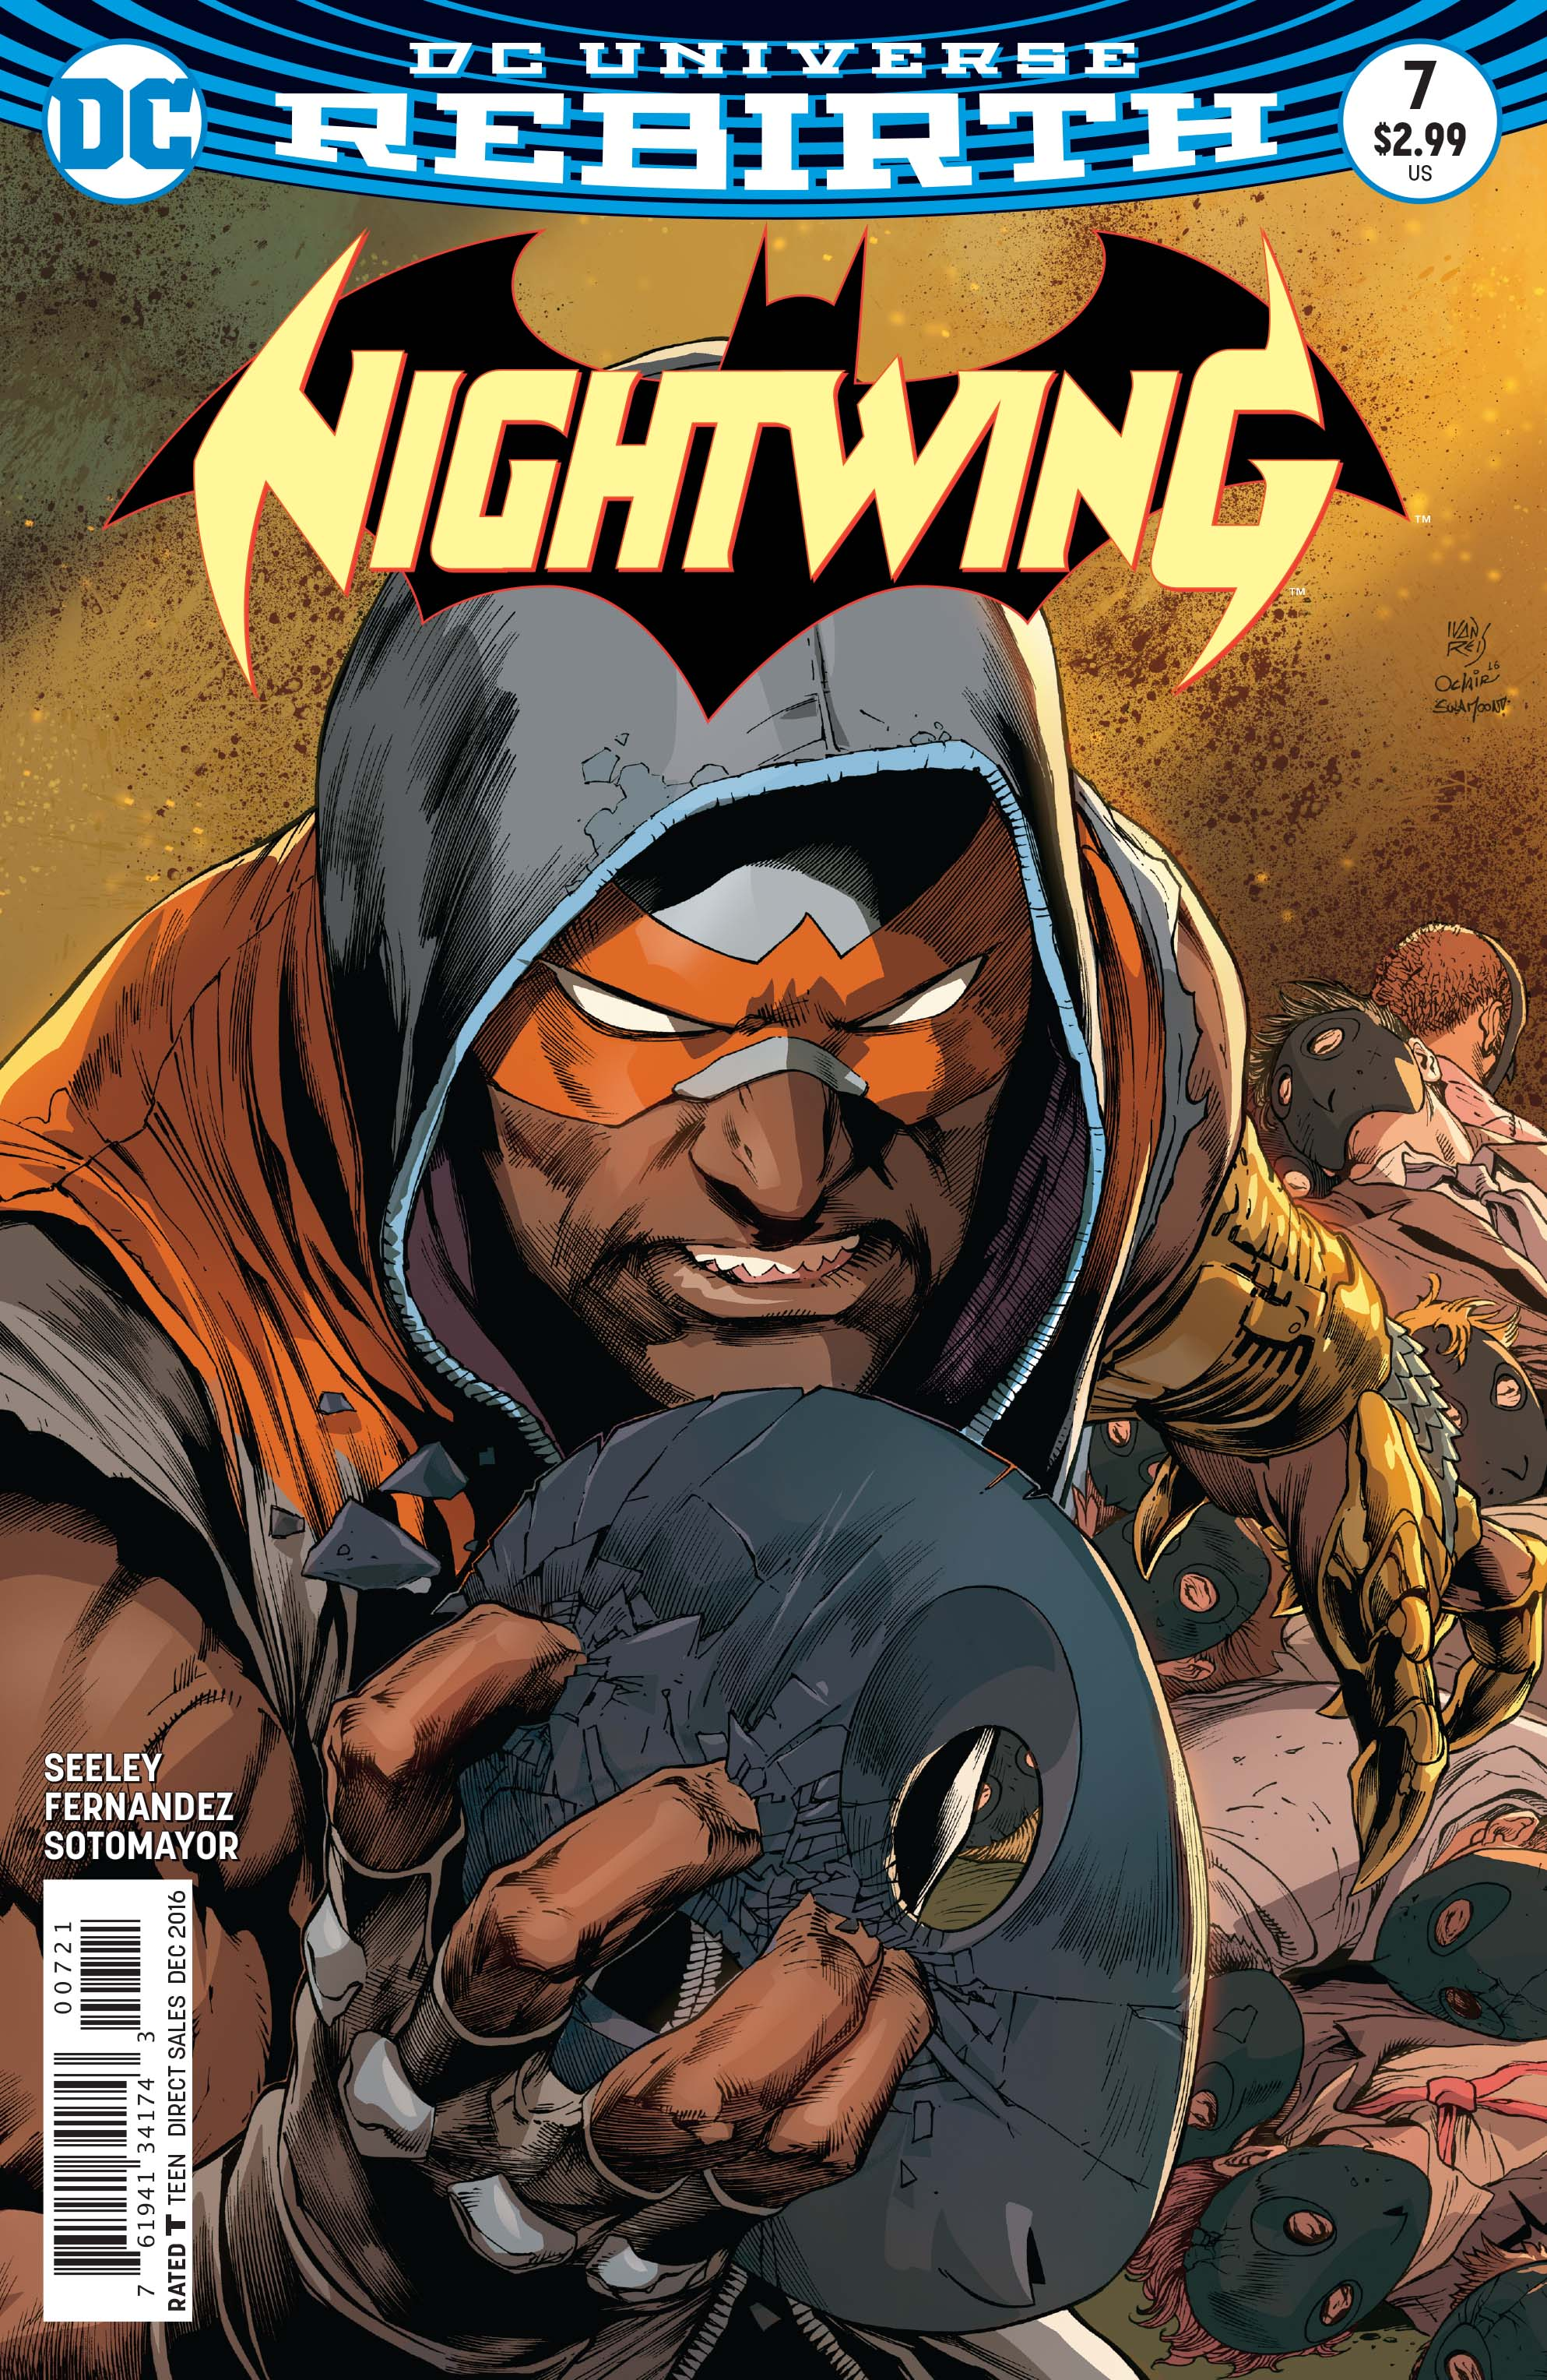 Nightwing #7 Review